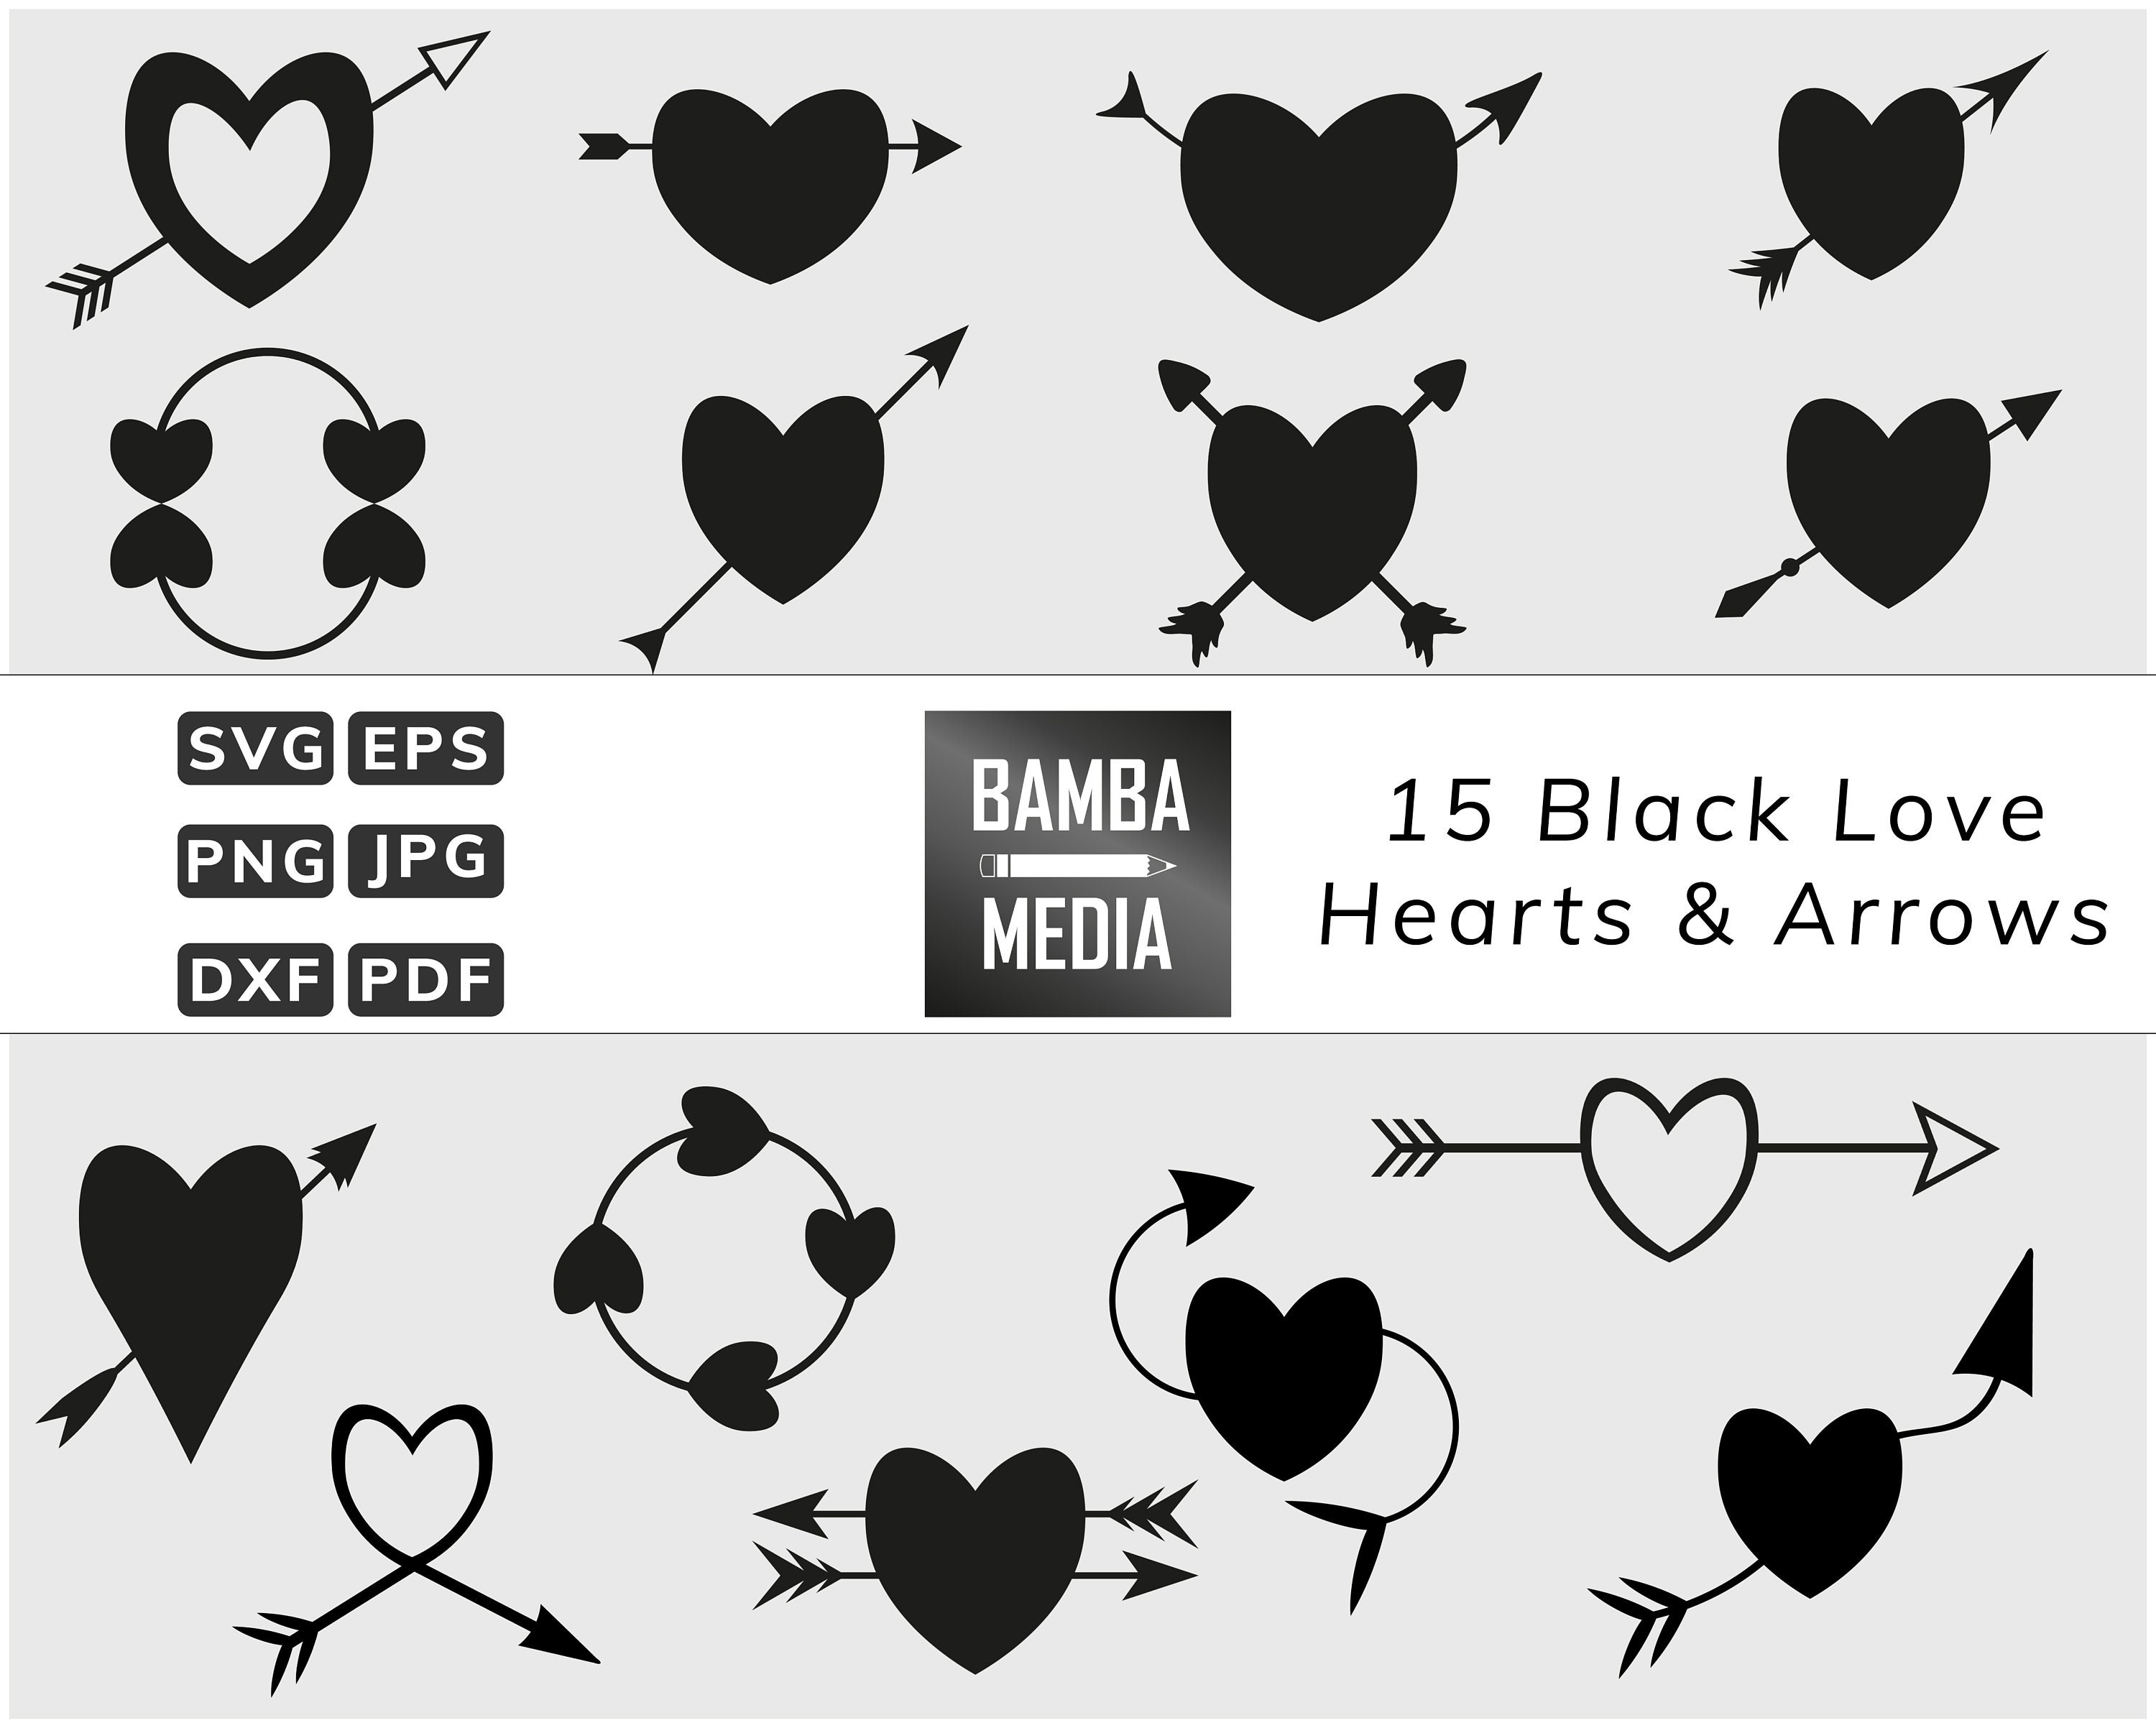 21 Black Hearts And Arrows Love Valentine In Multiple Formats For Cut Files And Crafts Svg Eps Dxf Png Jpg Pdf